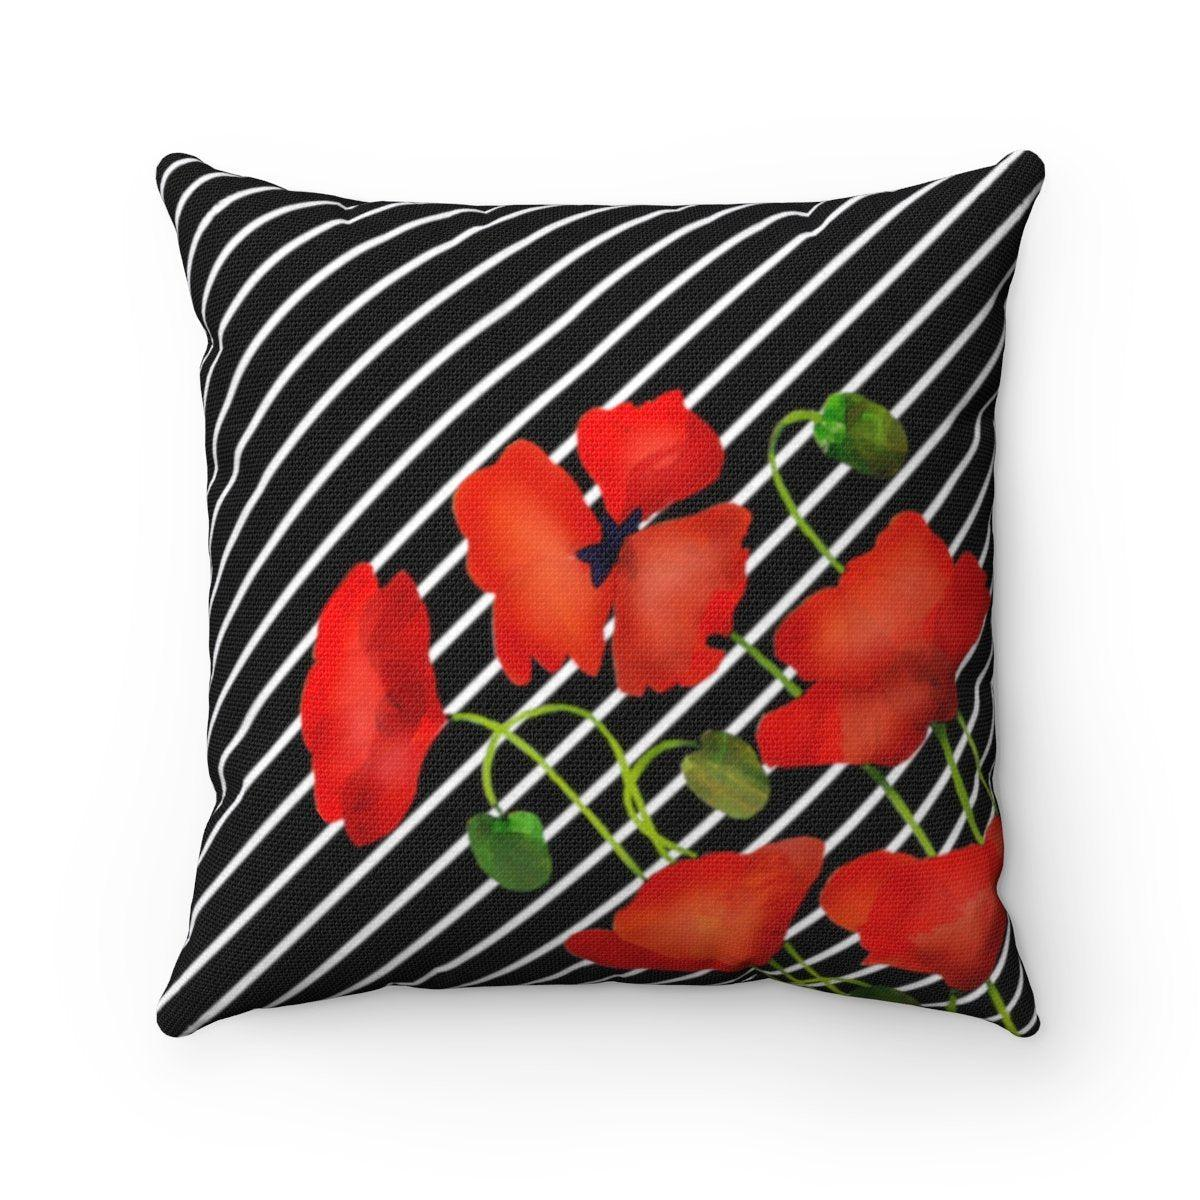 Valentine Floral Striped decorative cushion cover-Home Decor - Decorative Accents - Pillows & Throws - Decorative Pillows-Maison d'Elite-14x14-Très Elite